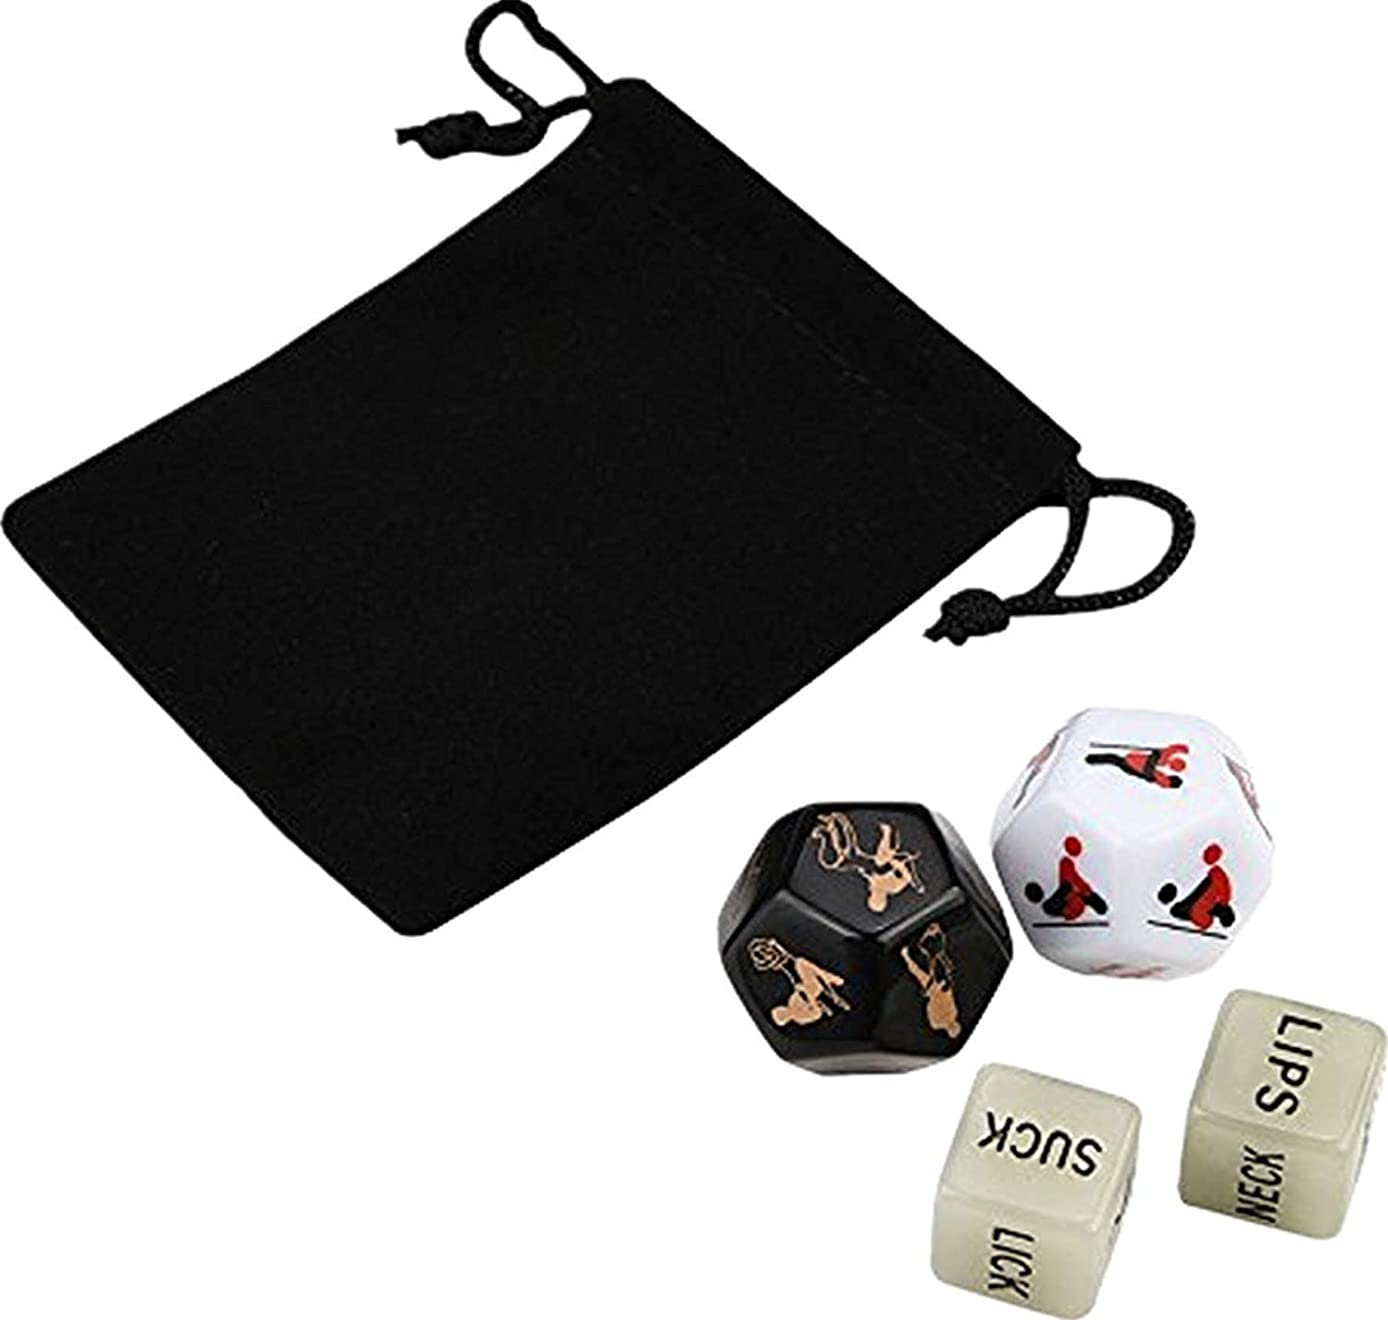 GC-US A Set of 4 Toys, Beautiful multifaceted Style to Play Games Fun Game dice Toy Party